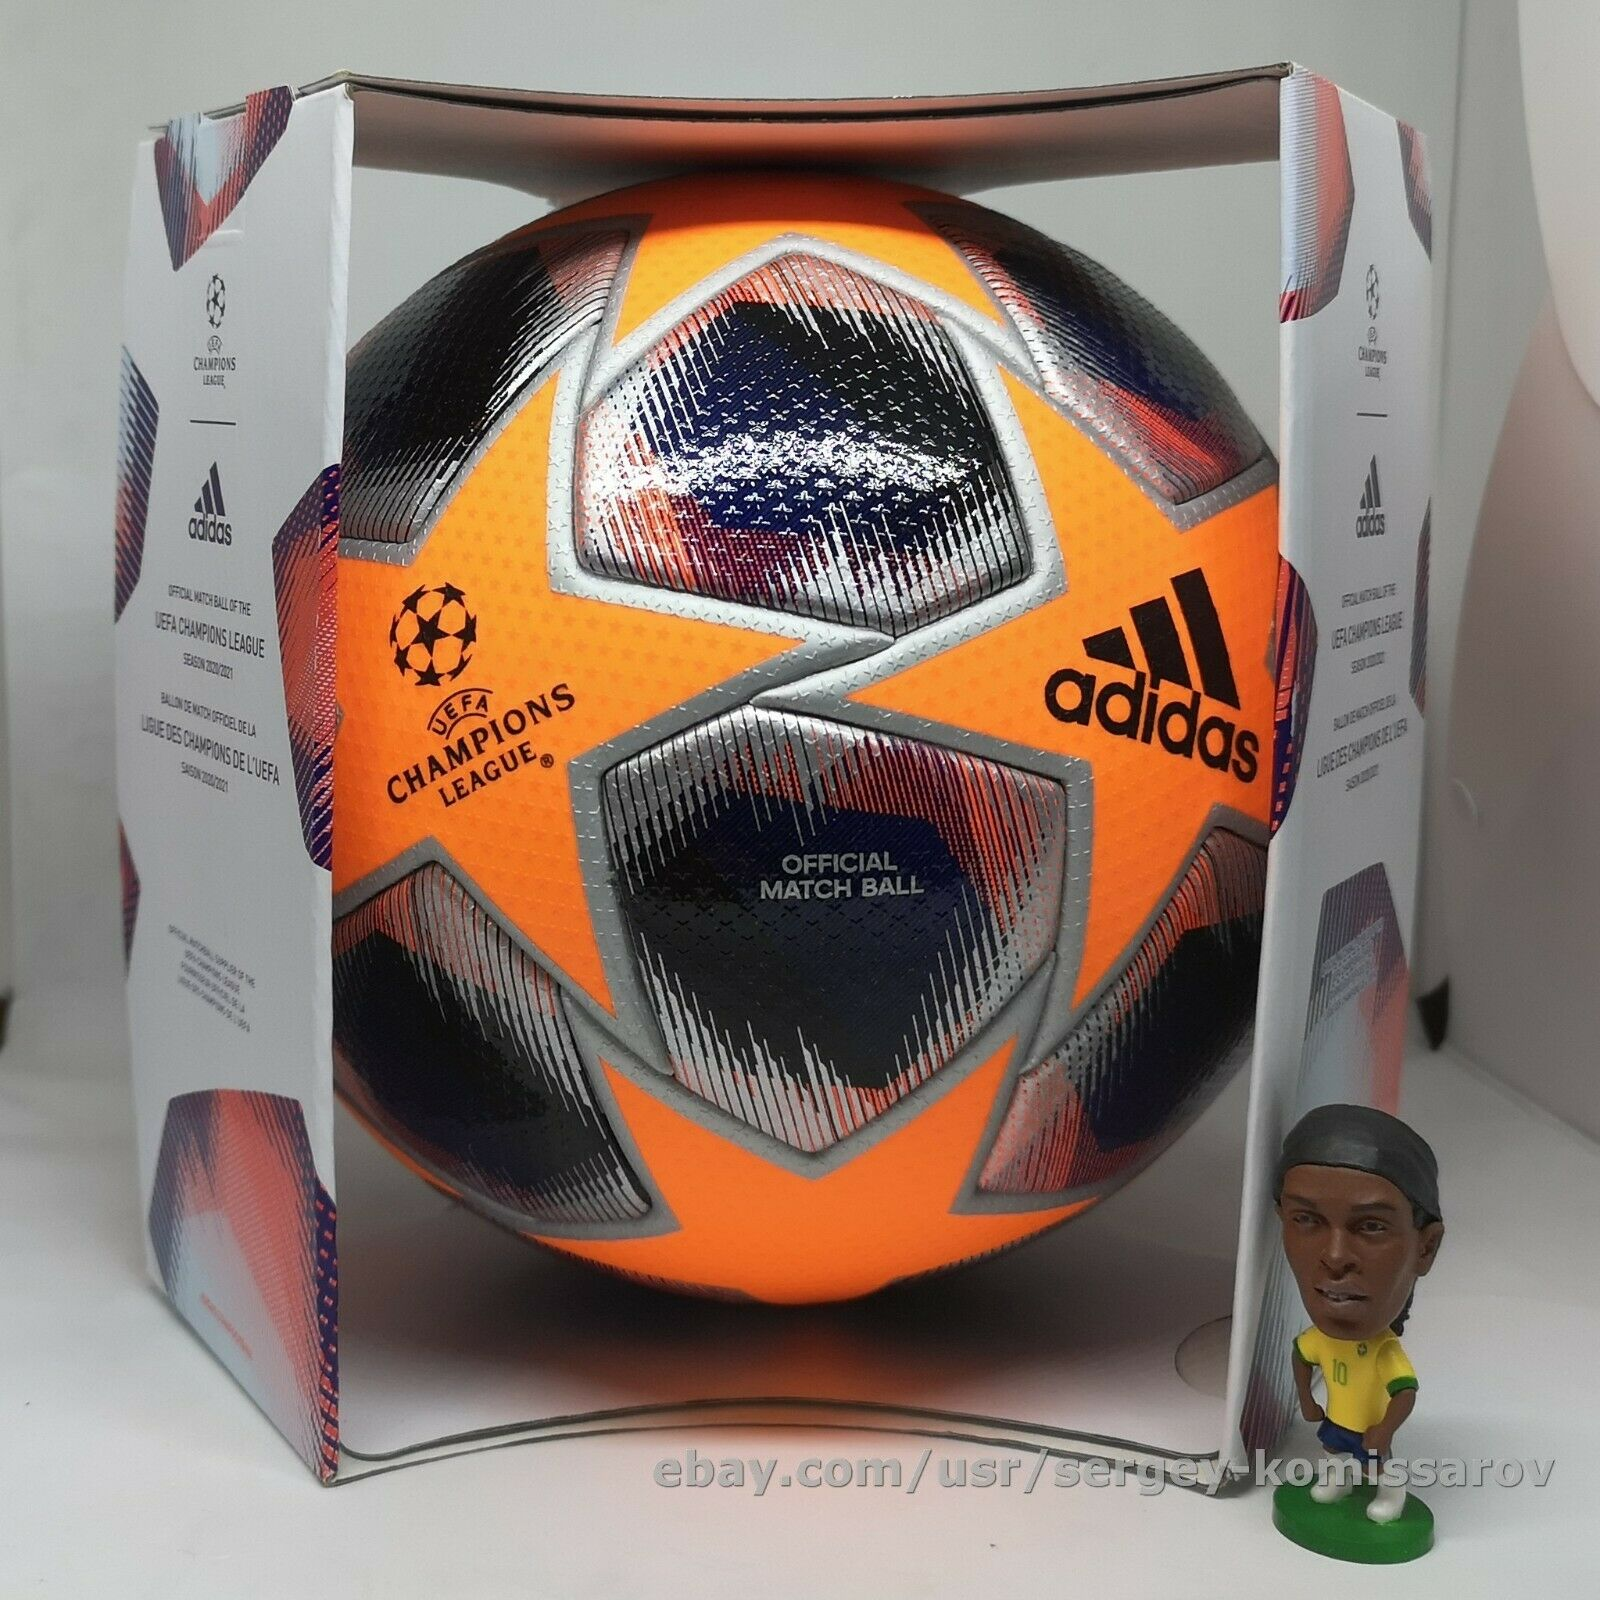 finale powerorange football omb winter uefa champions league g73455 orange 5 for sale online ebay adidas champions league finale 2020 2021 omb winter football ball size 5 fs0262